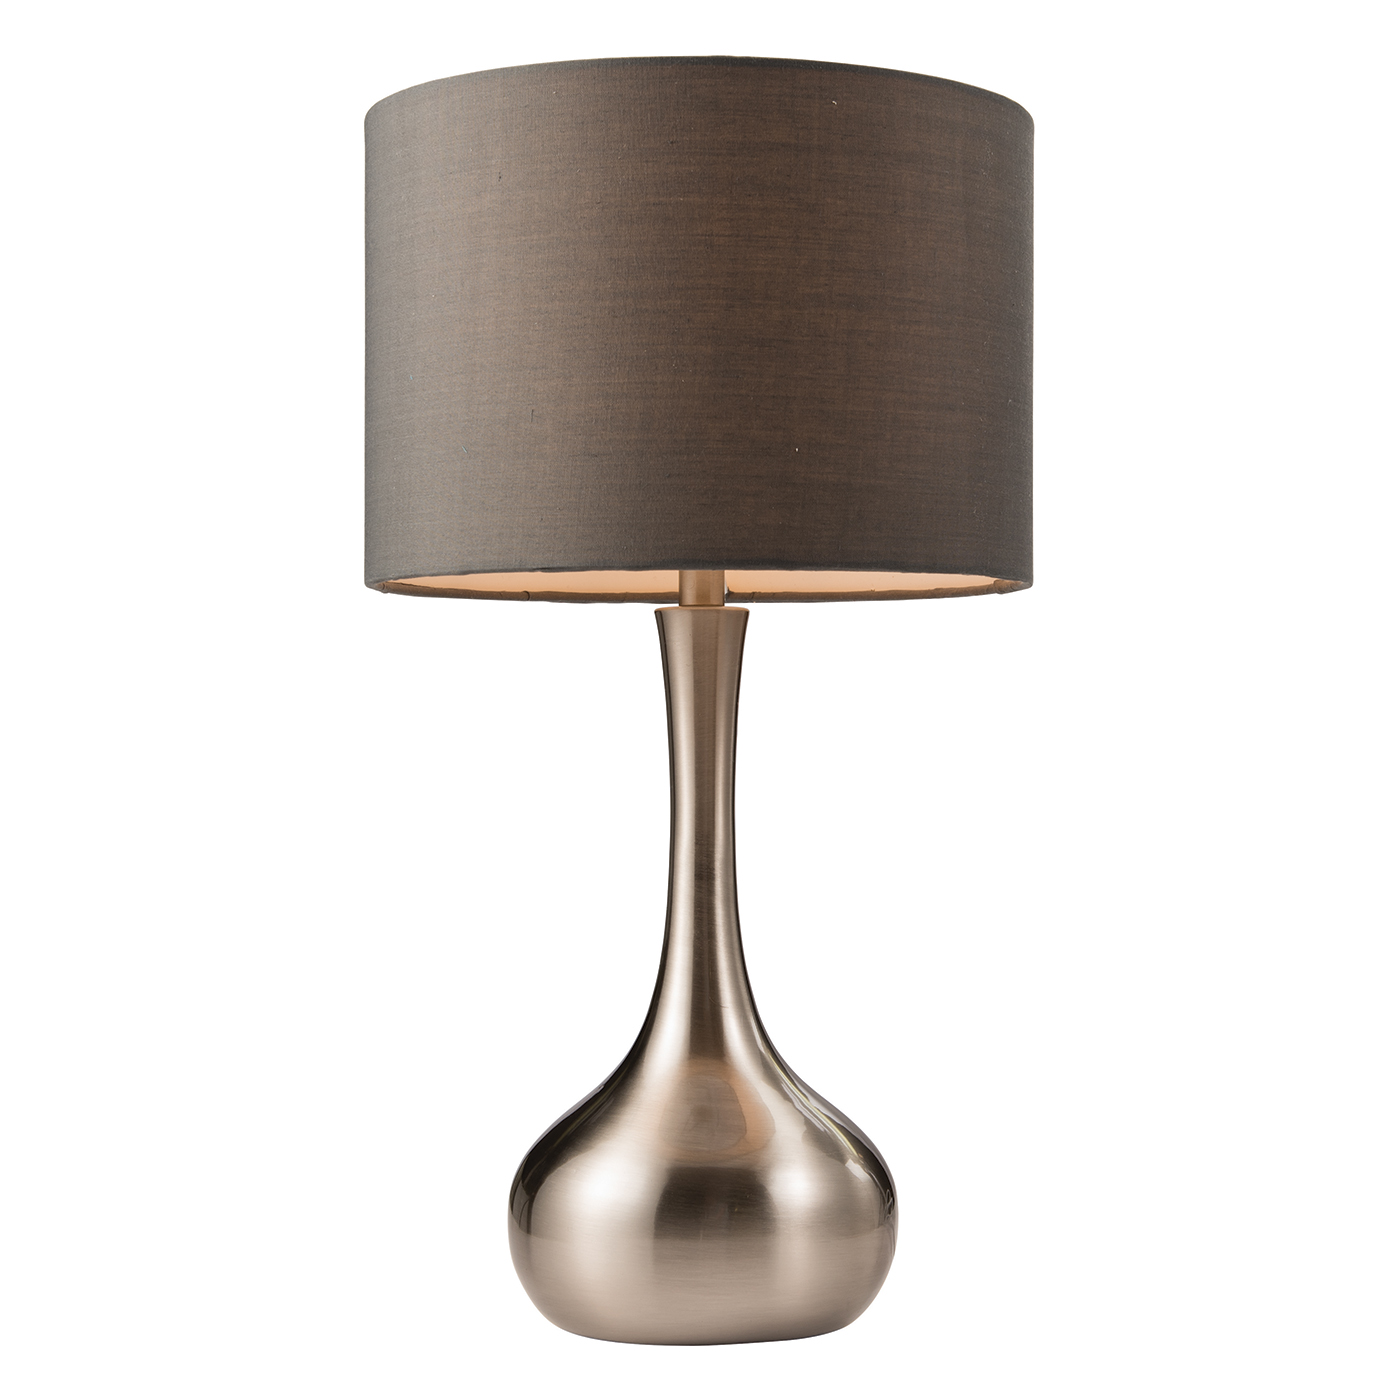 Endon Piccadilly touch table lamp 40W Satin nickel plate & dark grey tc fabric Thumbnail 1